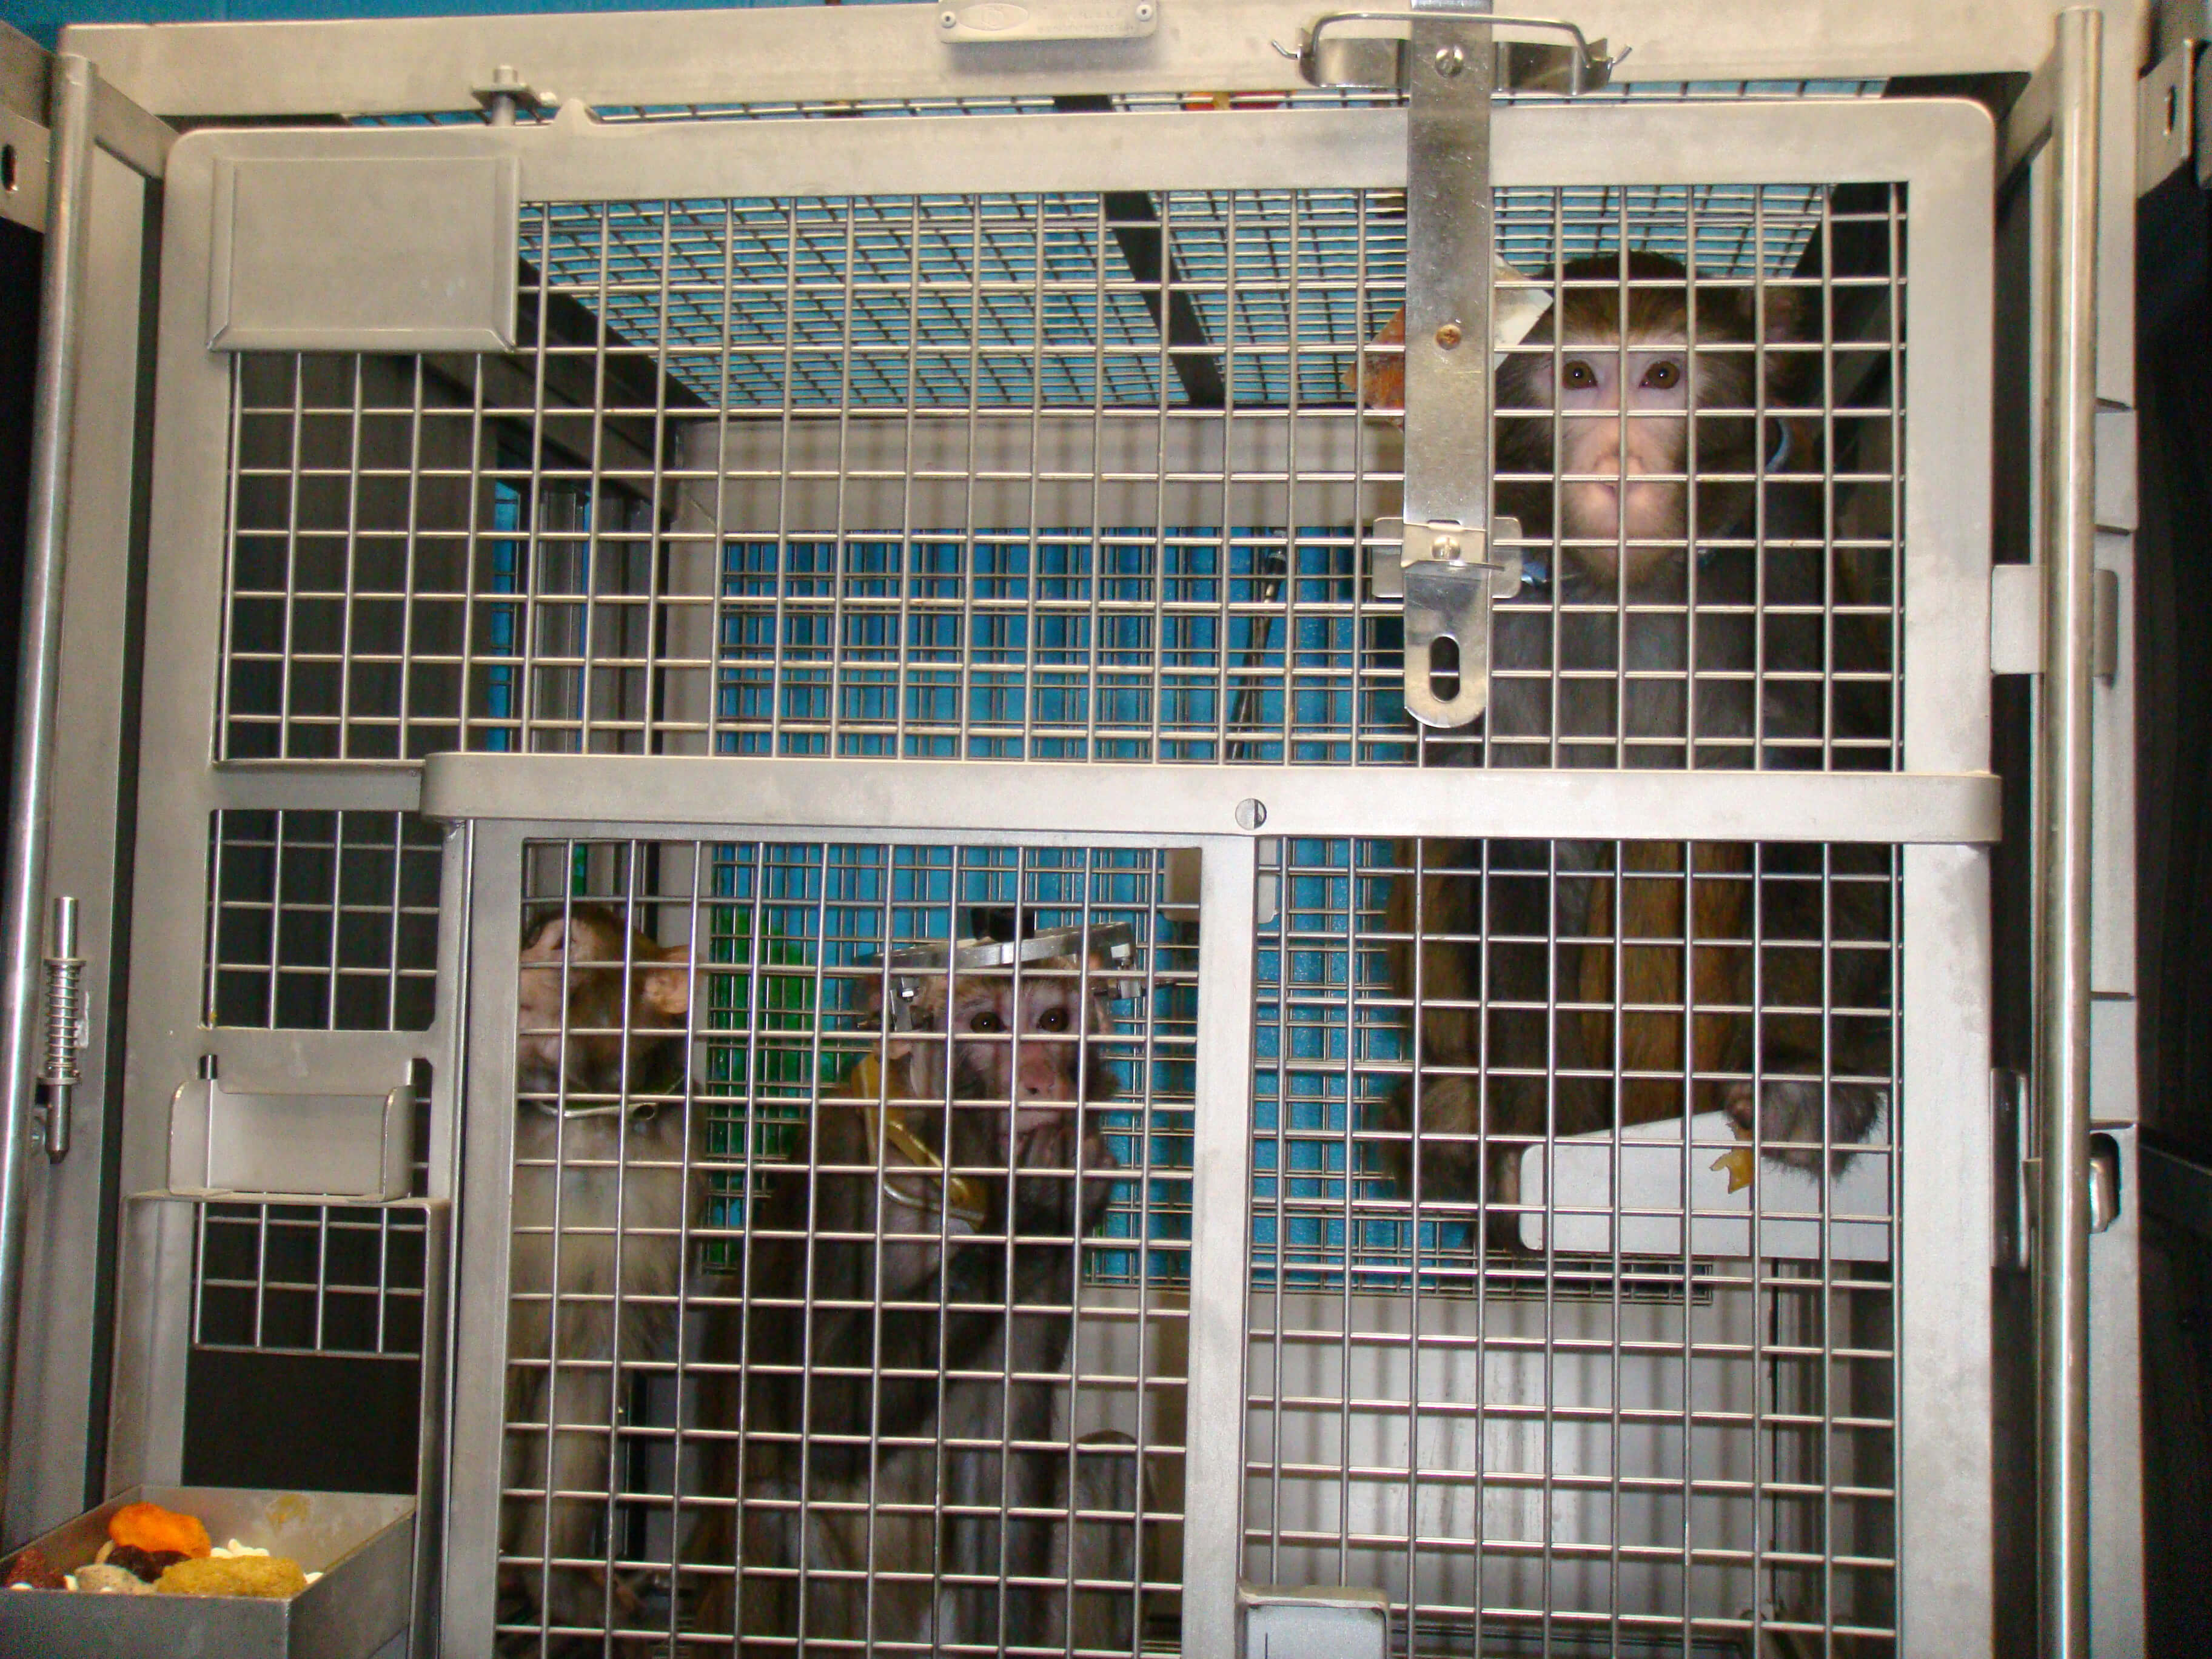 Monkeys Trapped in Laboratory